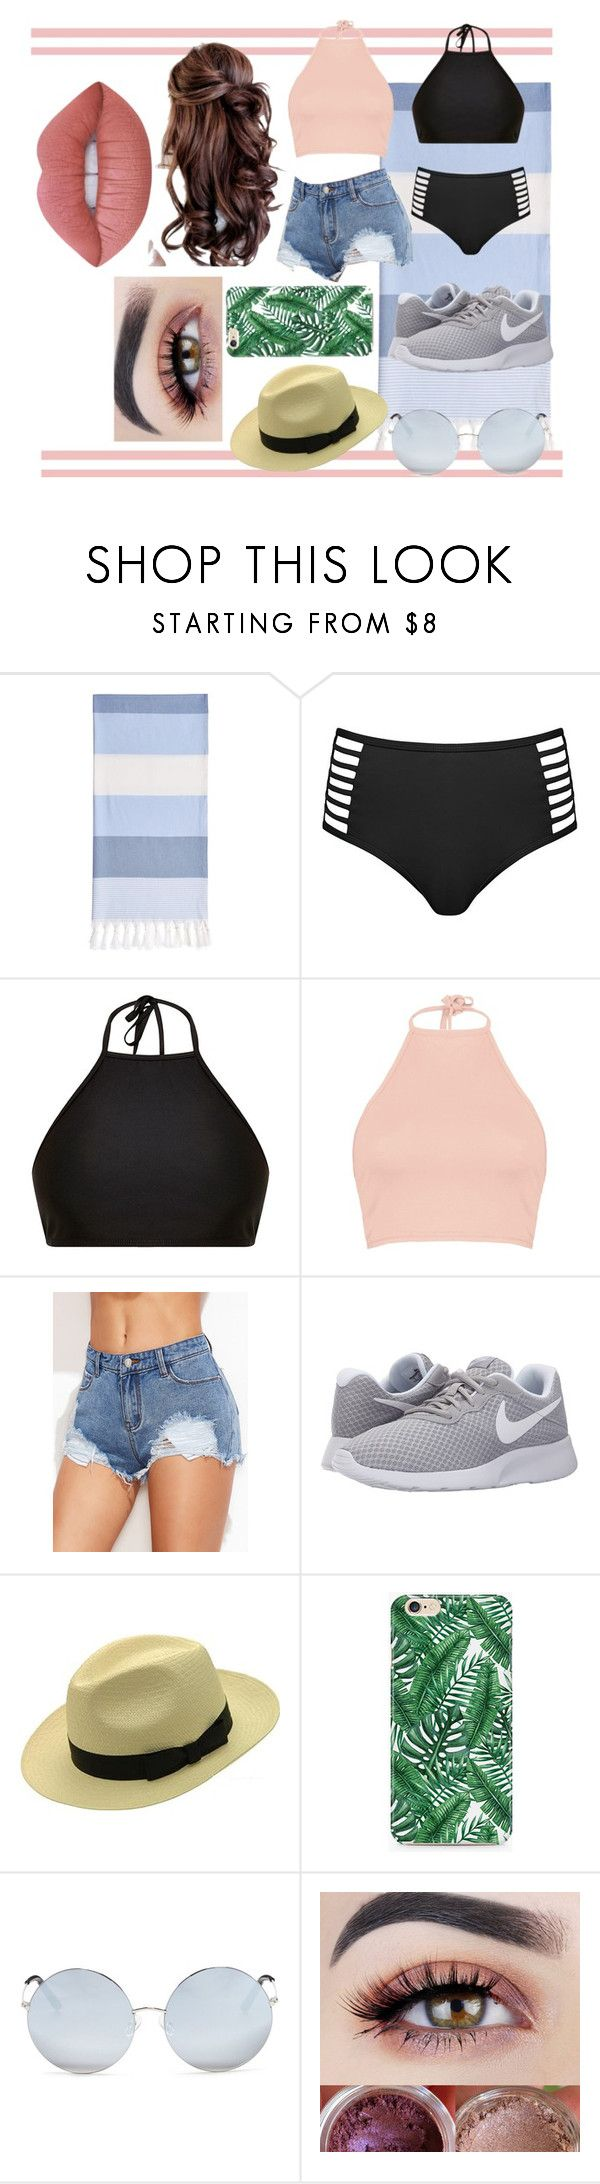 """""""swimwear"""" by keeleyndcorban on Polyvore featuring Linum Home Textiles, Venus, Mix & Match, Boohoo, NIKE, Caso, Matthew Williamson and Lime Crime"""